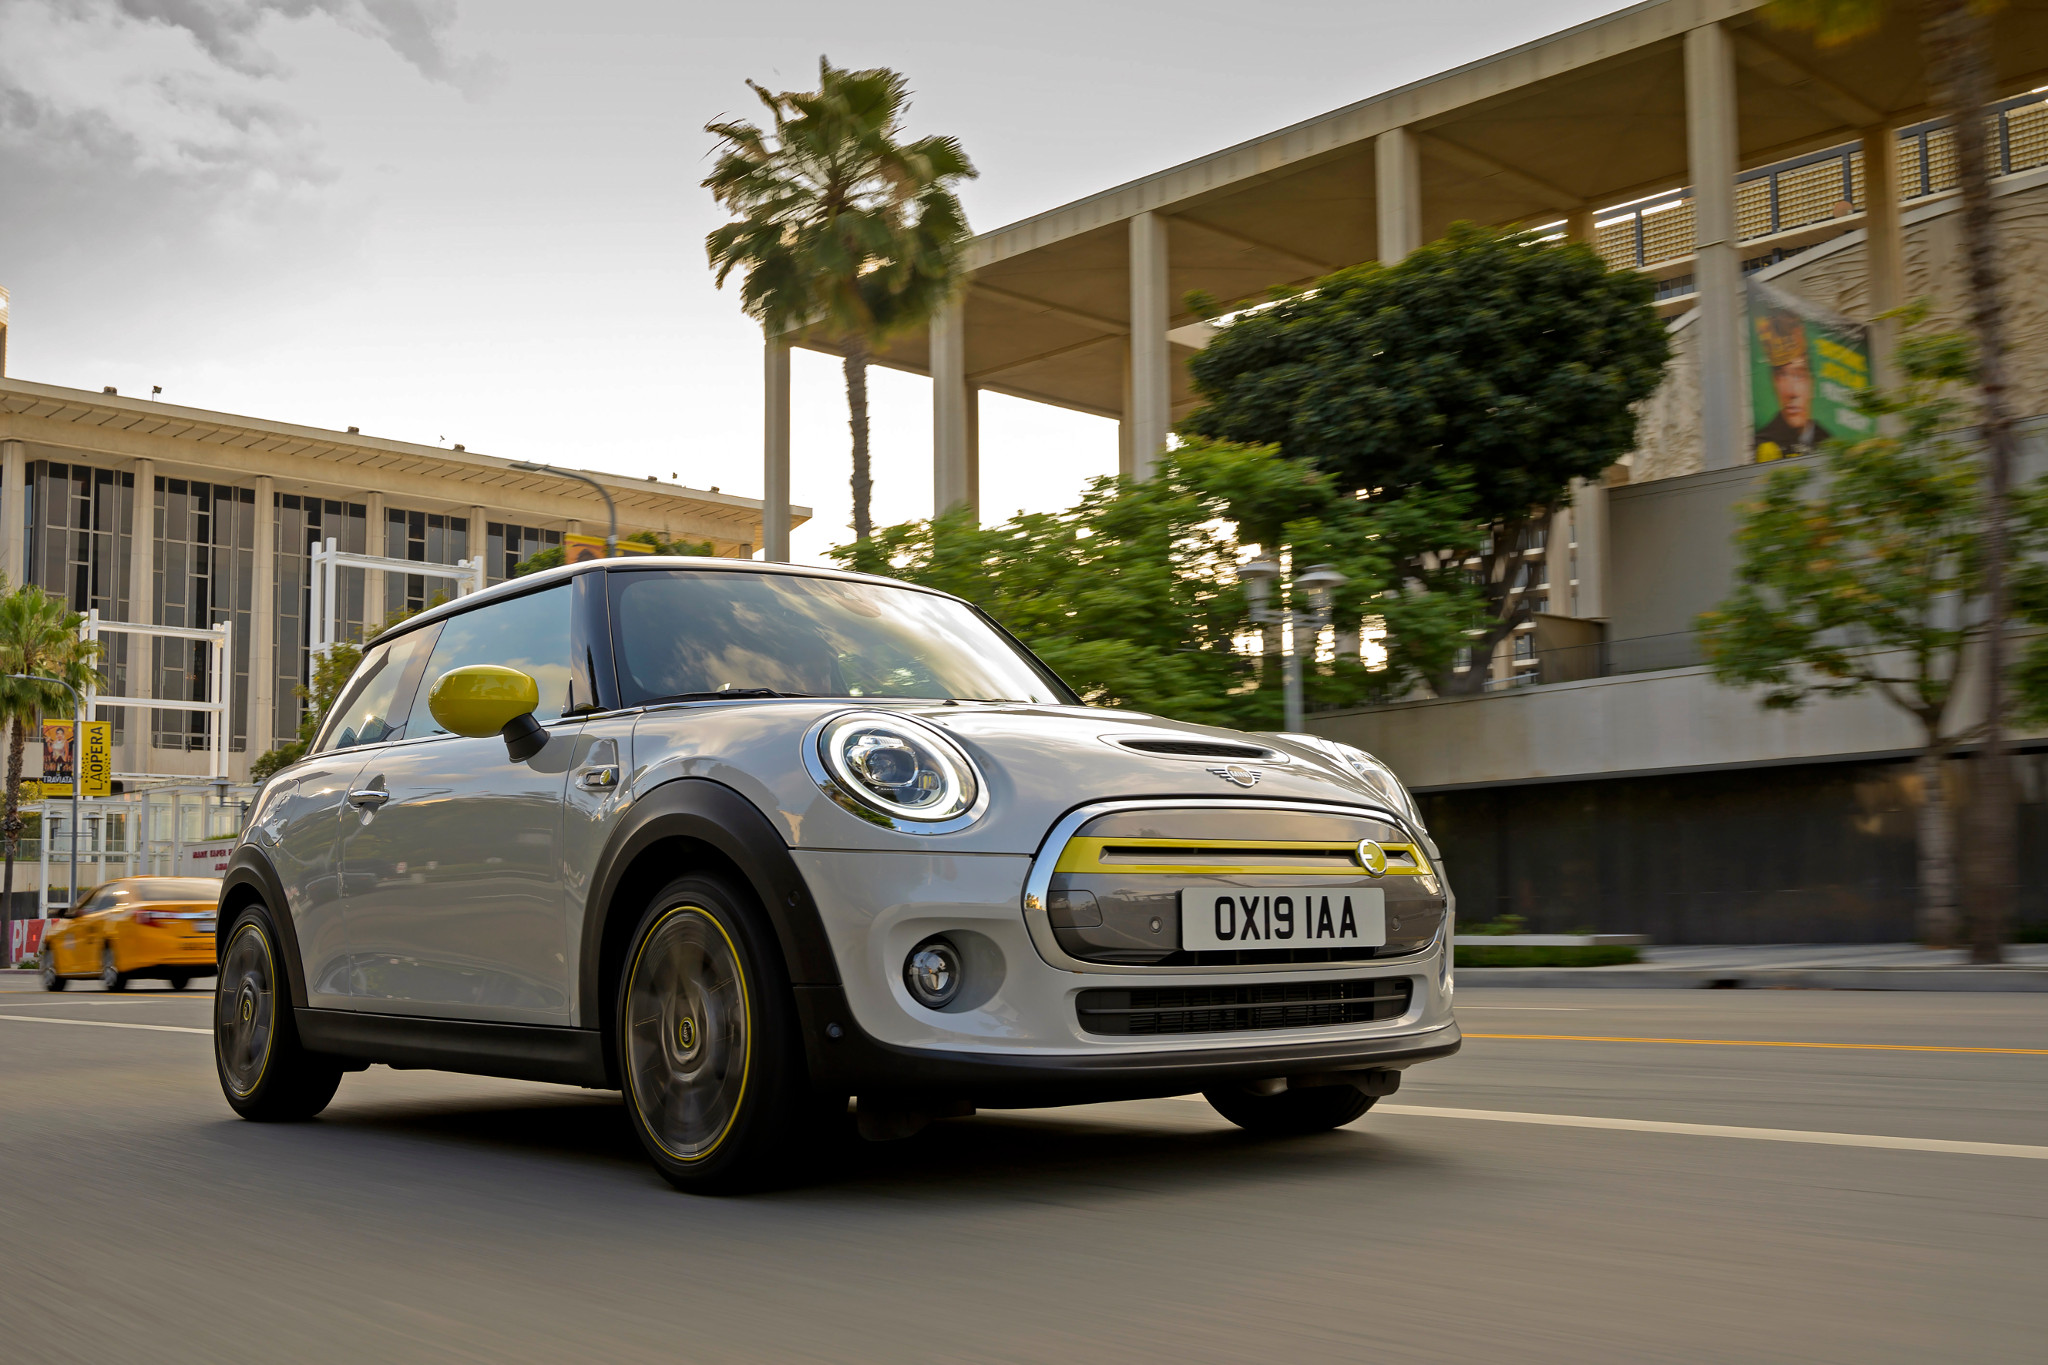 2020 Mini Cooper SE EV: Low Range, Low Price